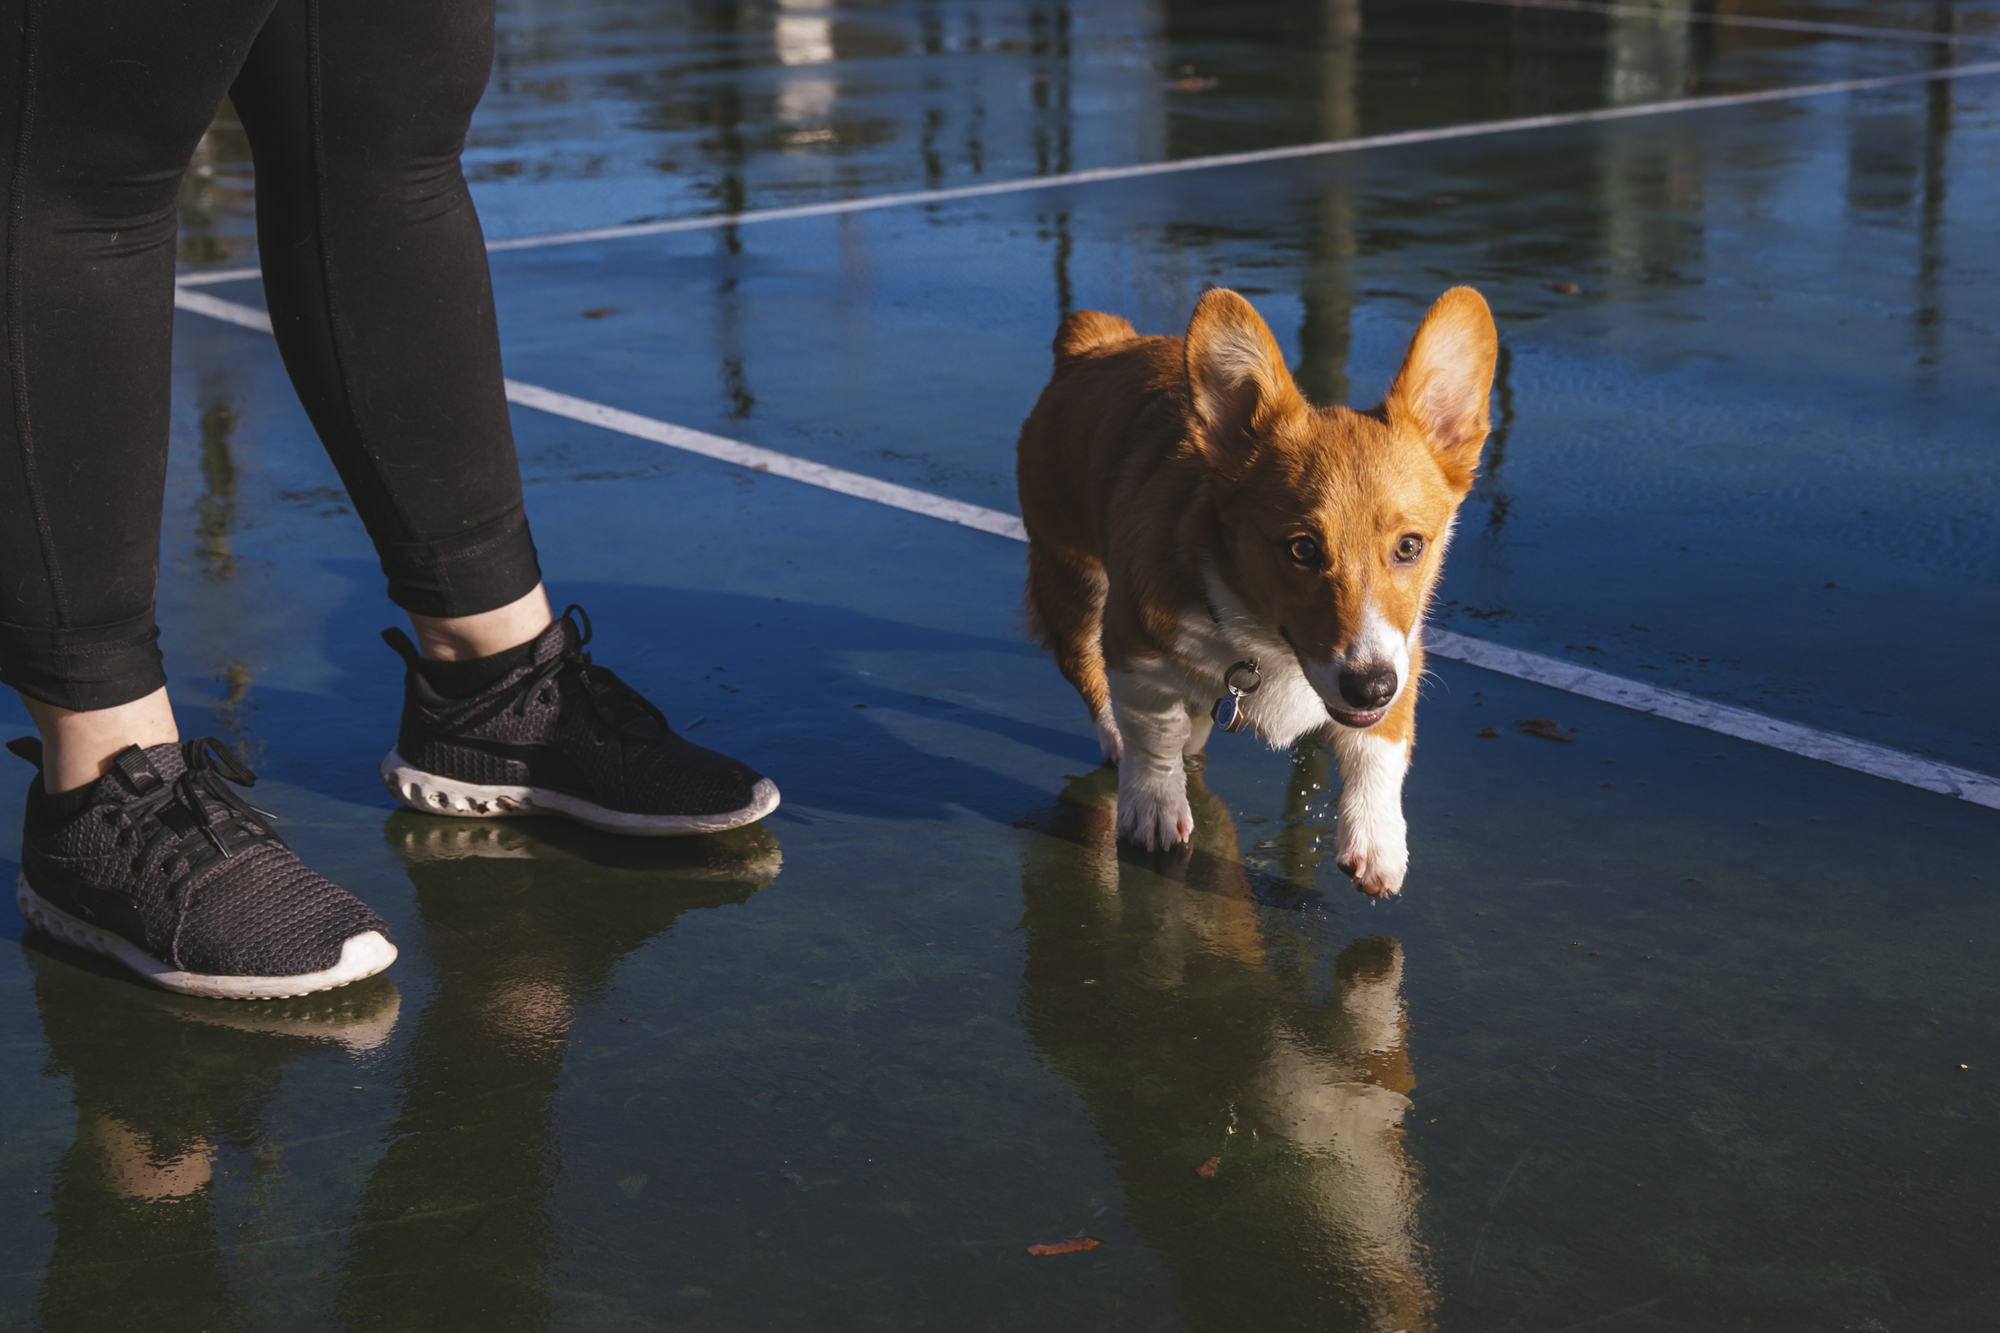 <p>Meet Floyd the six month old Pembroke Welsh Corgi! Floyd likes snuggles, food and dogs. He dislike sirens, dogs on the TV, and rain! You can follow Floyd's journey through life on his Instagram page @floyd_corgi.{&nbsp;}The Seattle RUFFined Spotlight is a weekly profile of local pets living and loving life in the PNW. If you or someone you know has a pet you'd like featured, email us at hello@seattlerefined.com or tag #SeattleRUFFined and your furbaby could be the next spotlighted! (Image: Sunita Martini / Seattle Refined).</p>